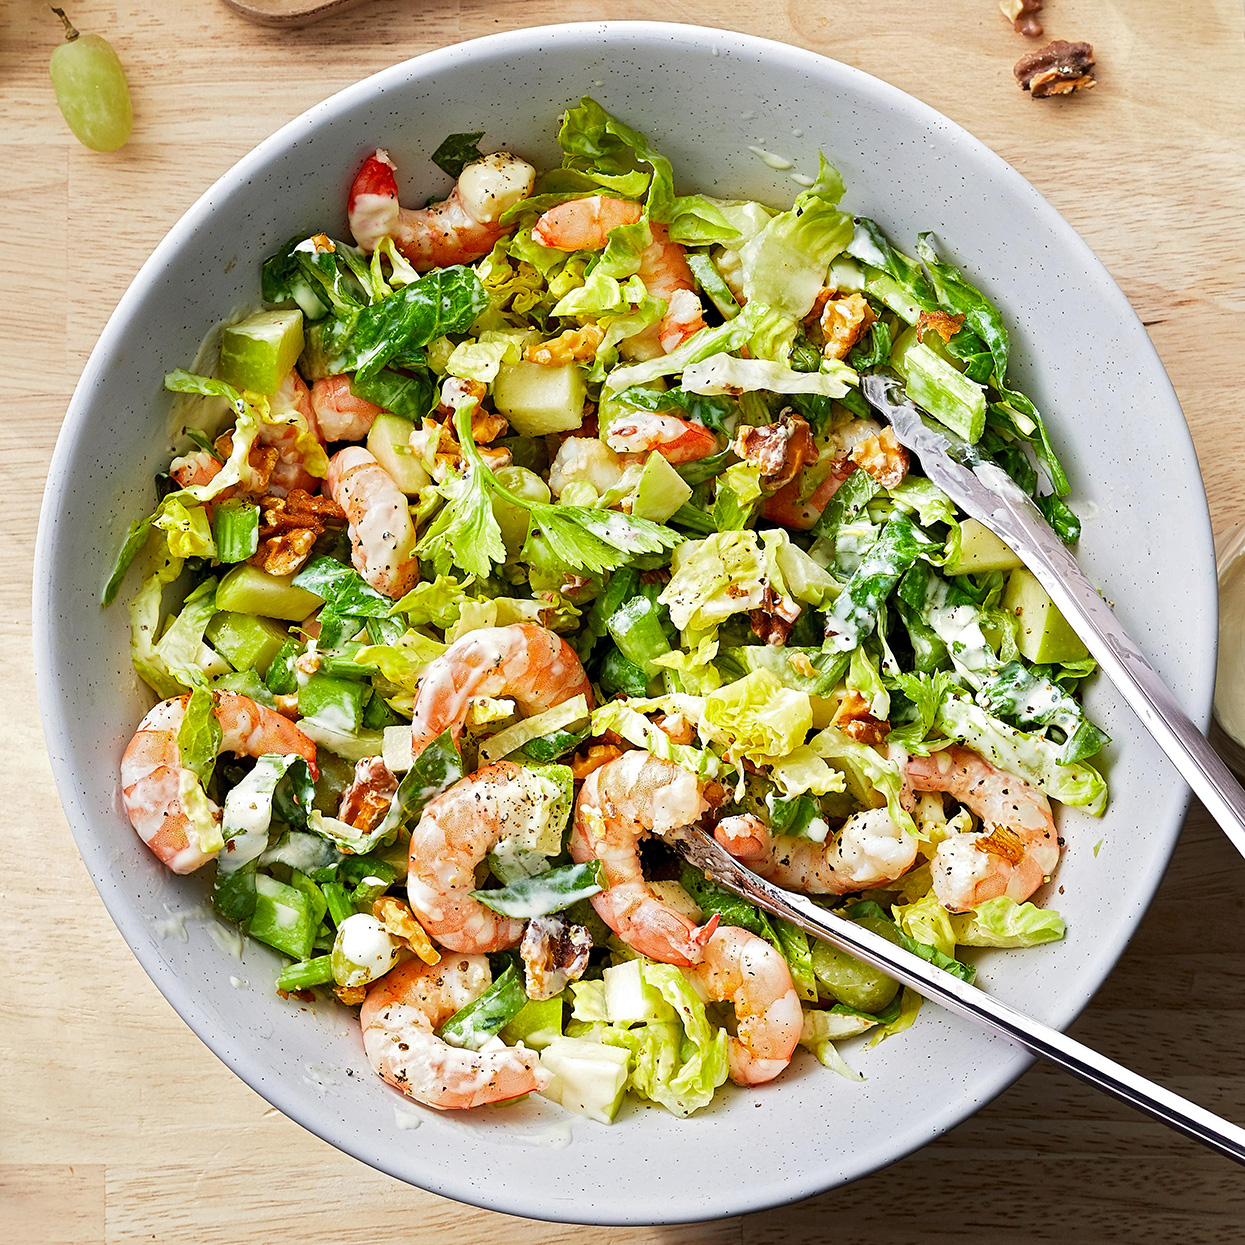 Gordon Ramsay's Shrimp Waldorf Salad